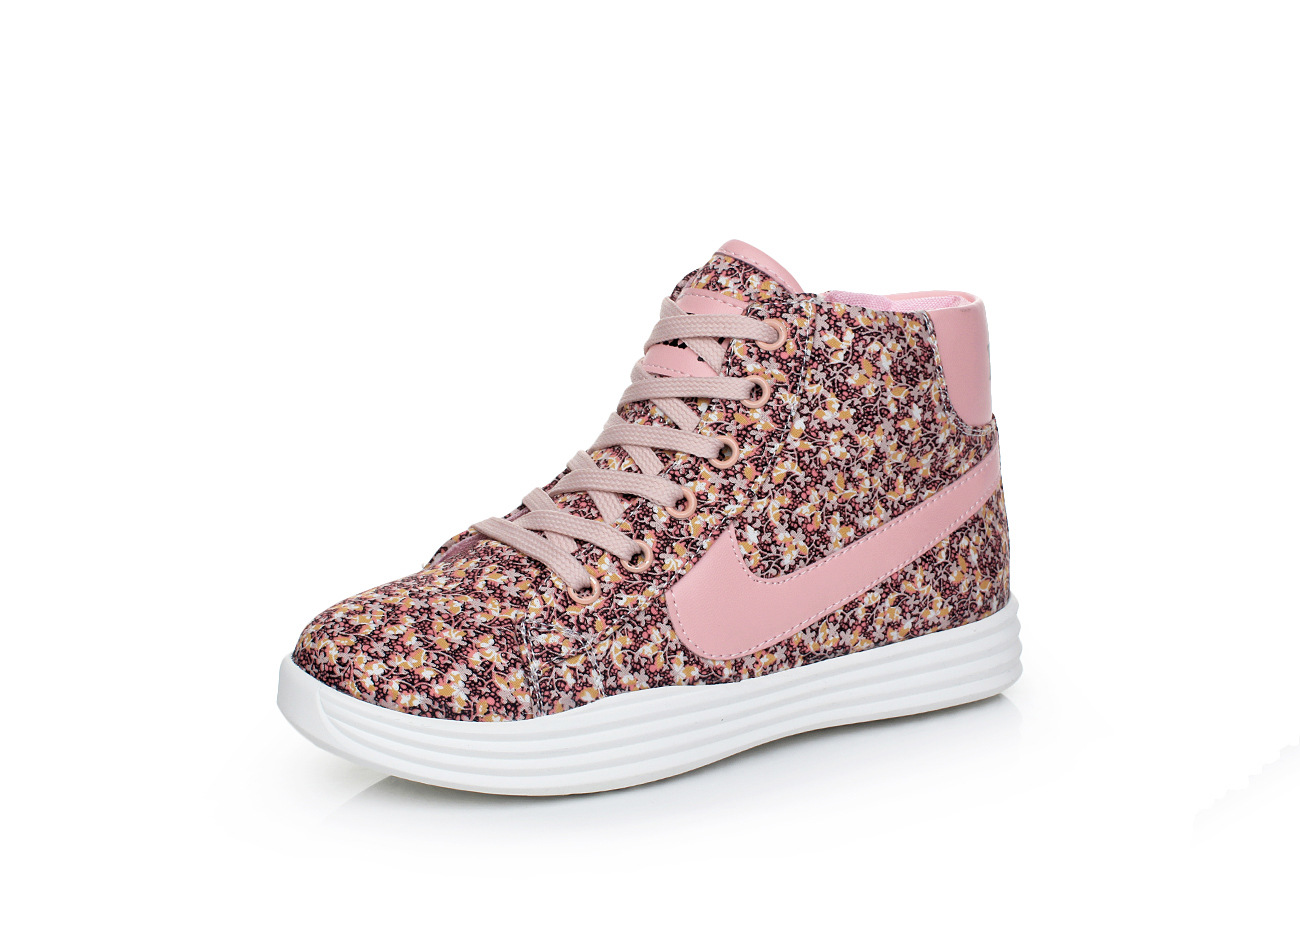 Compare Prices on Designer Shoes Girls- Online Shopping